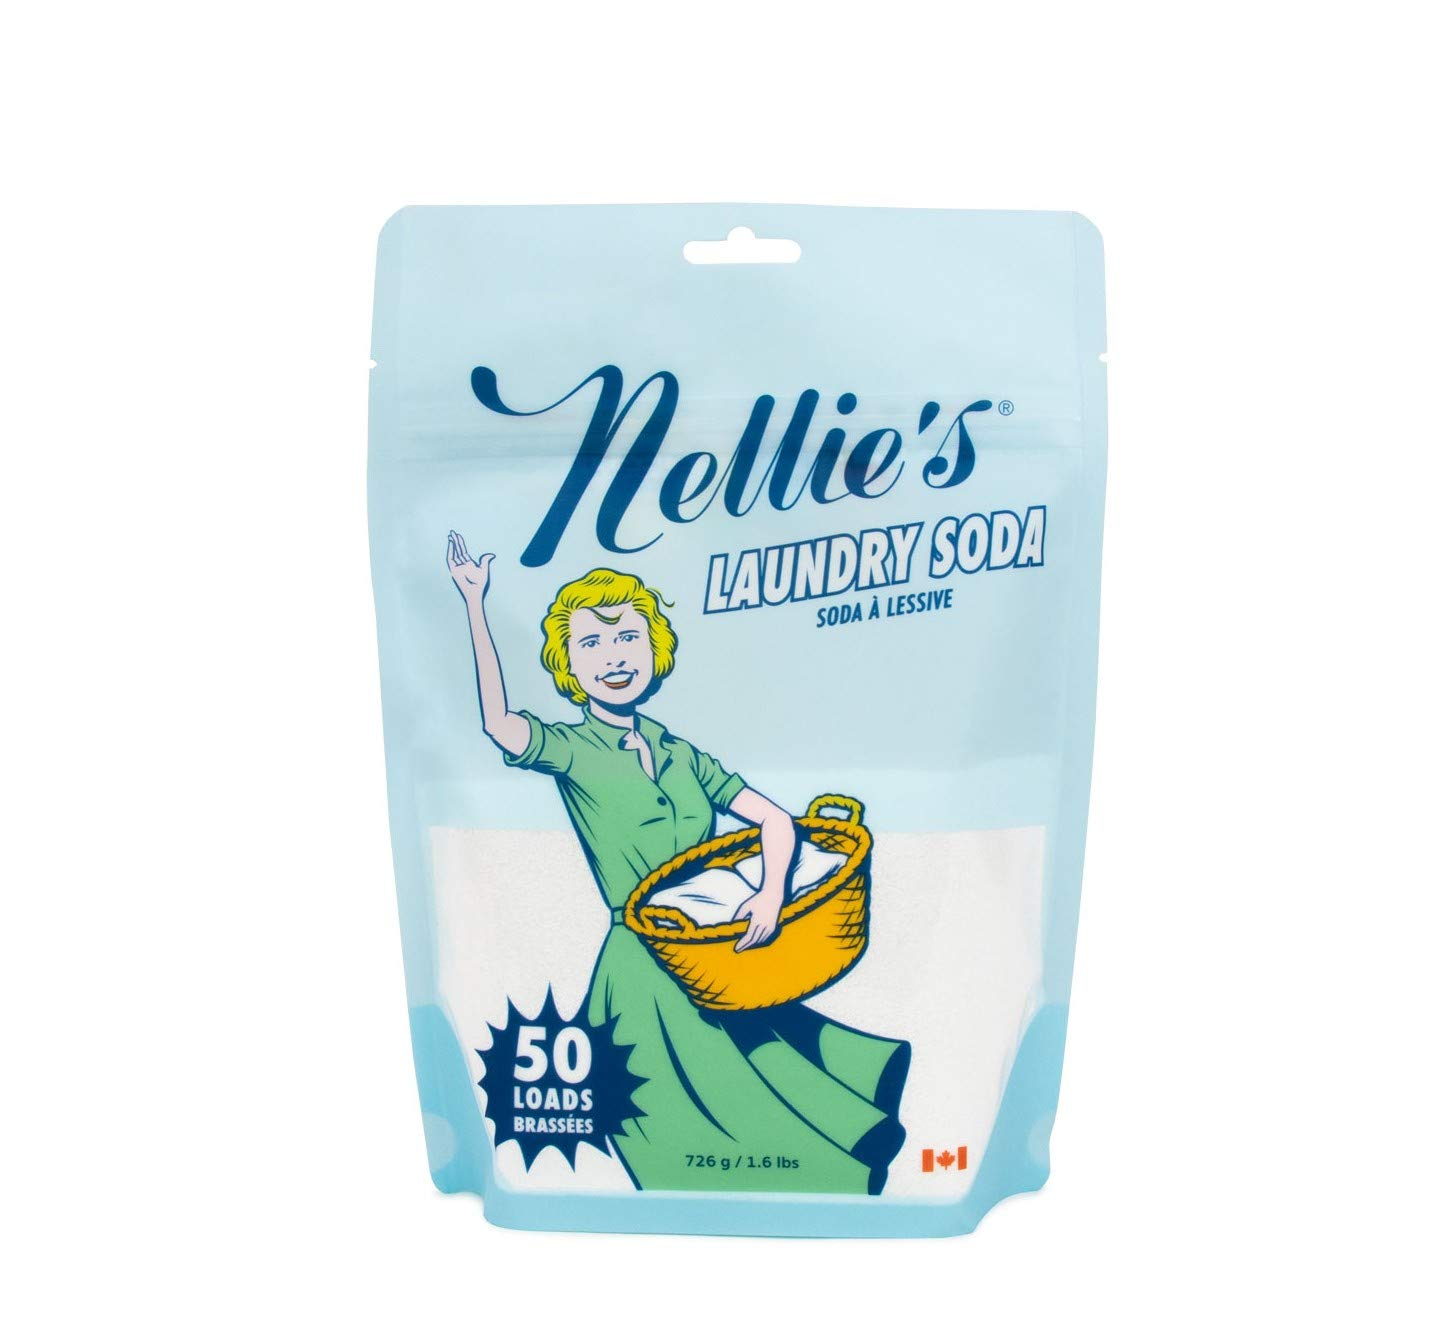 Nellie's Laundry Detergent Soda, 1.6lbs, 50 Load Bag by Nellie's